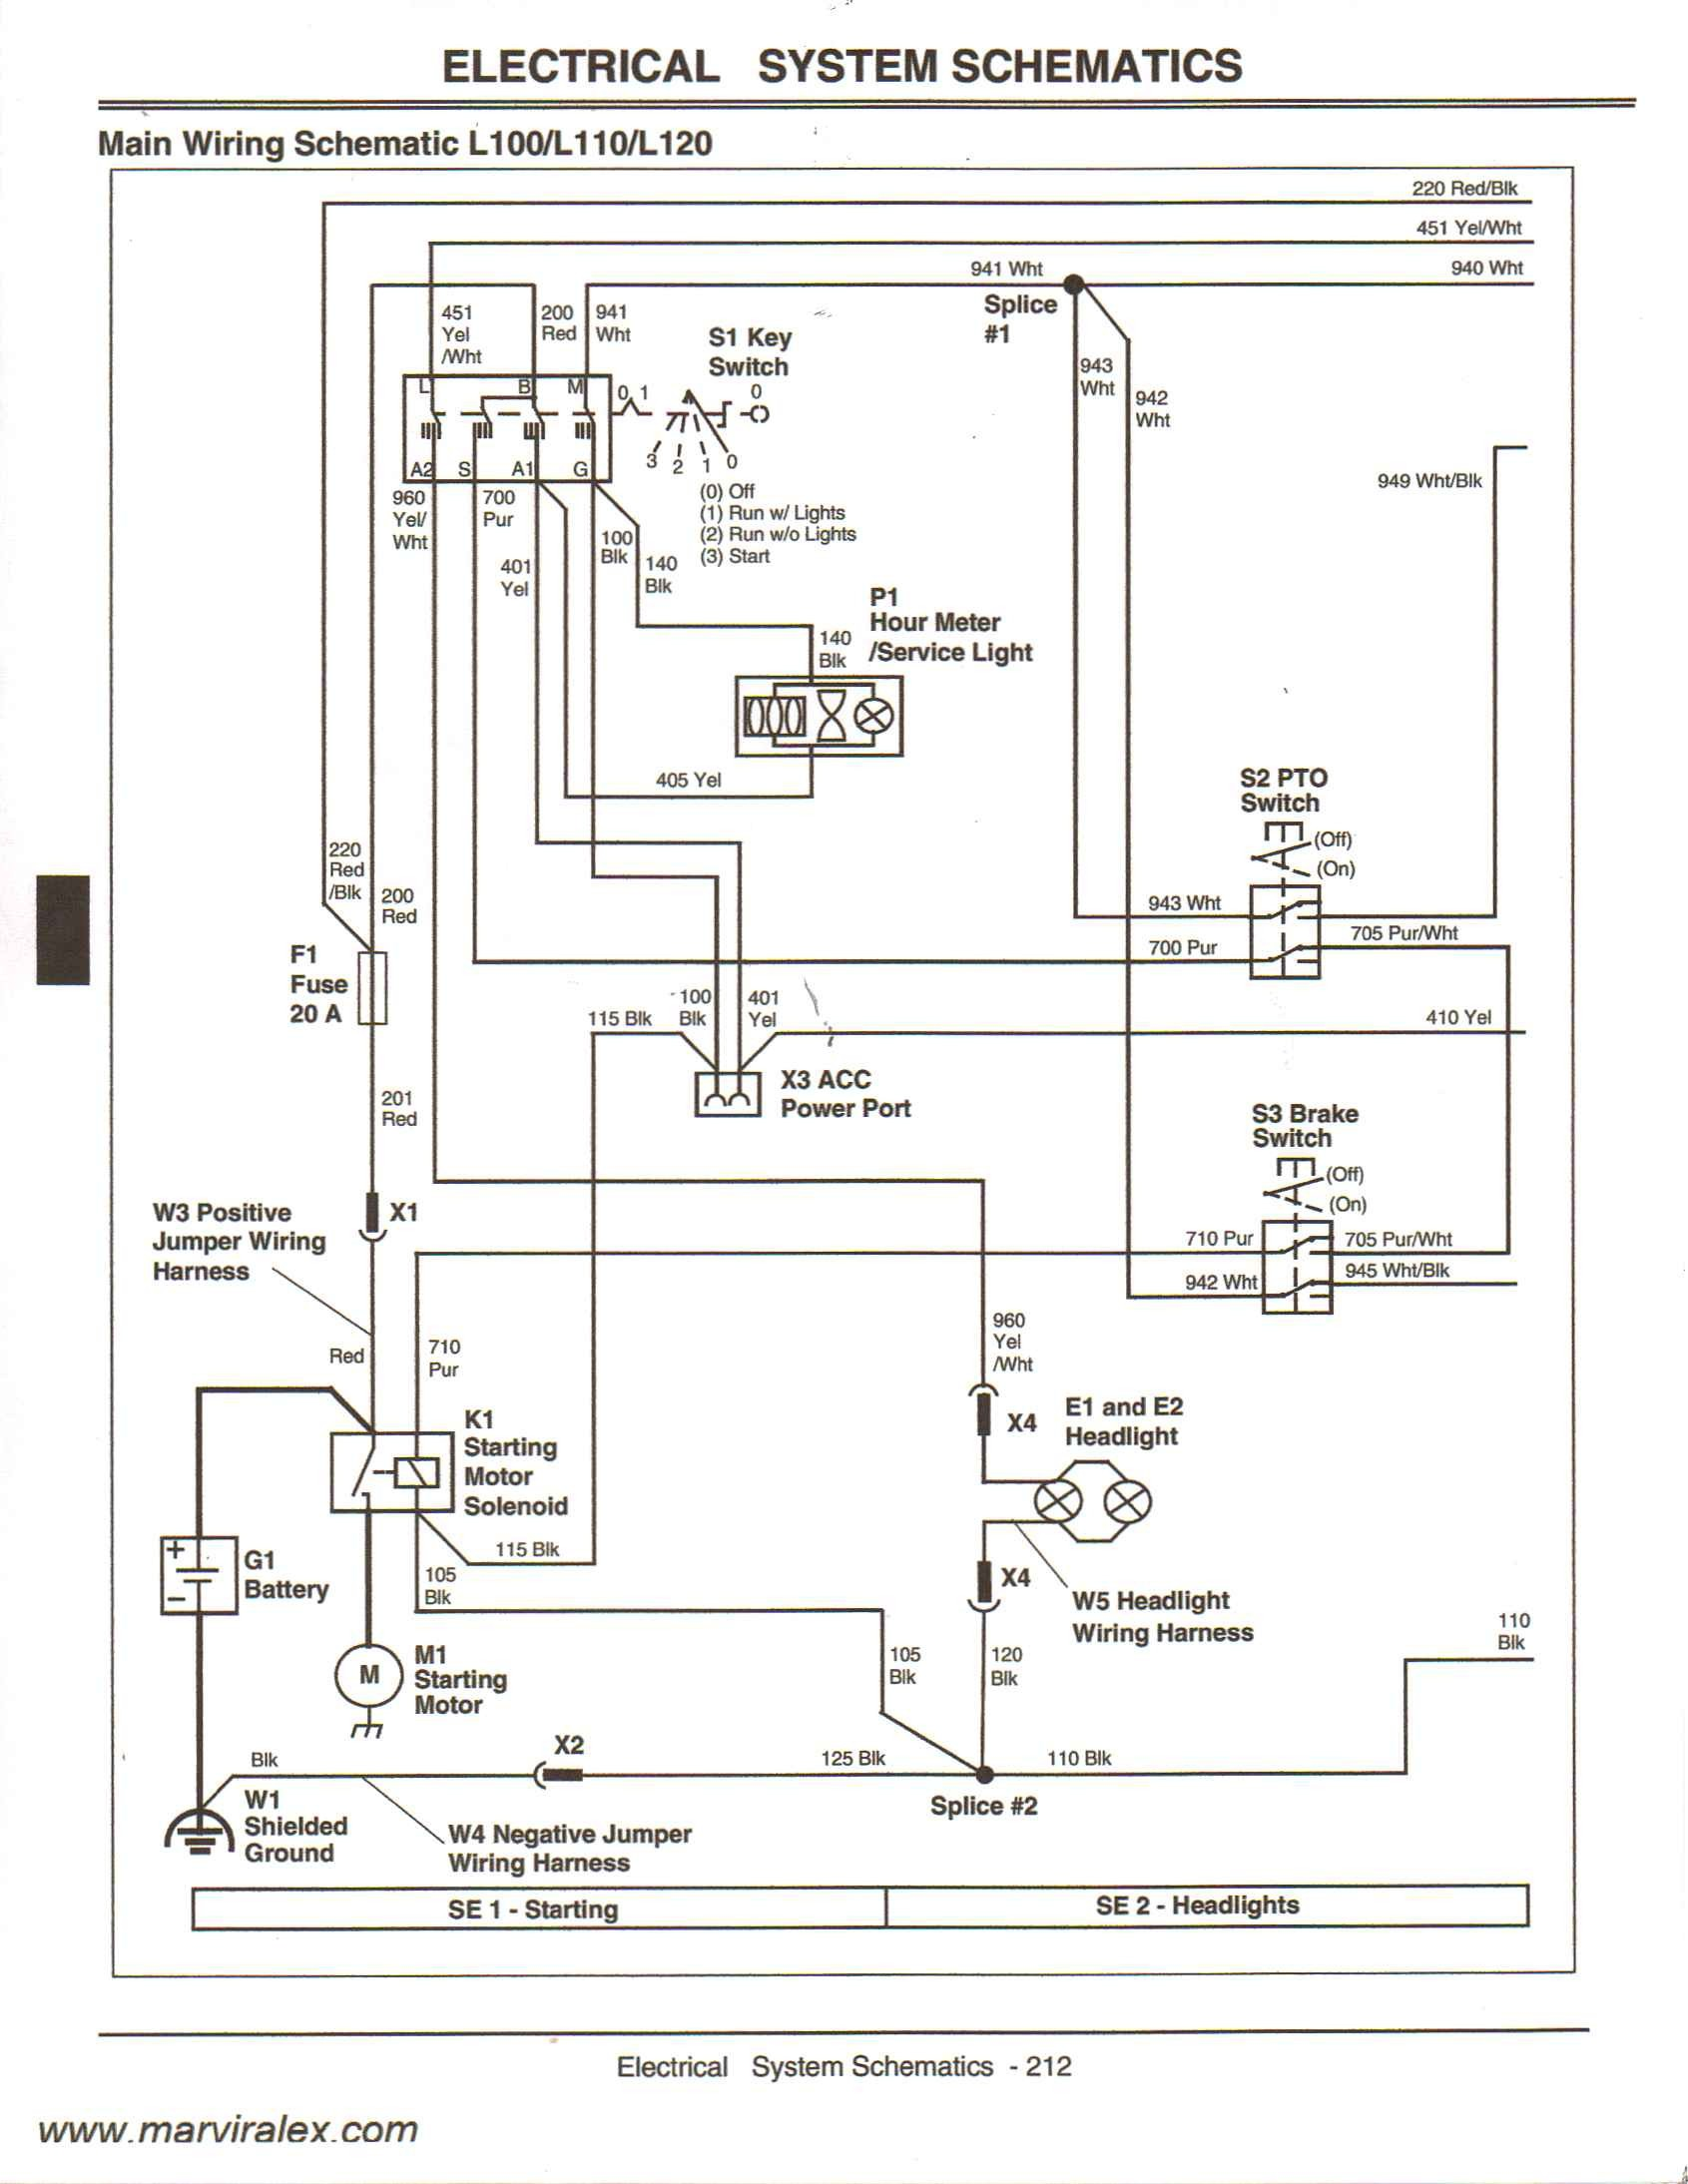 john deere 4020 wiring harness wiring diagram on the net john deere 2050 2240 electrical question john deere